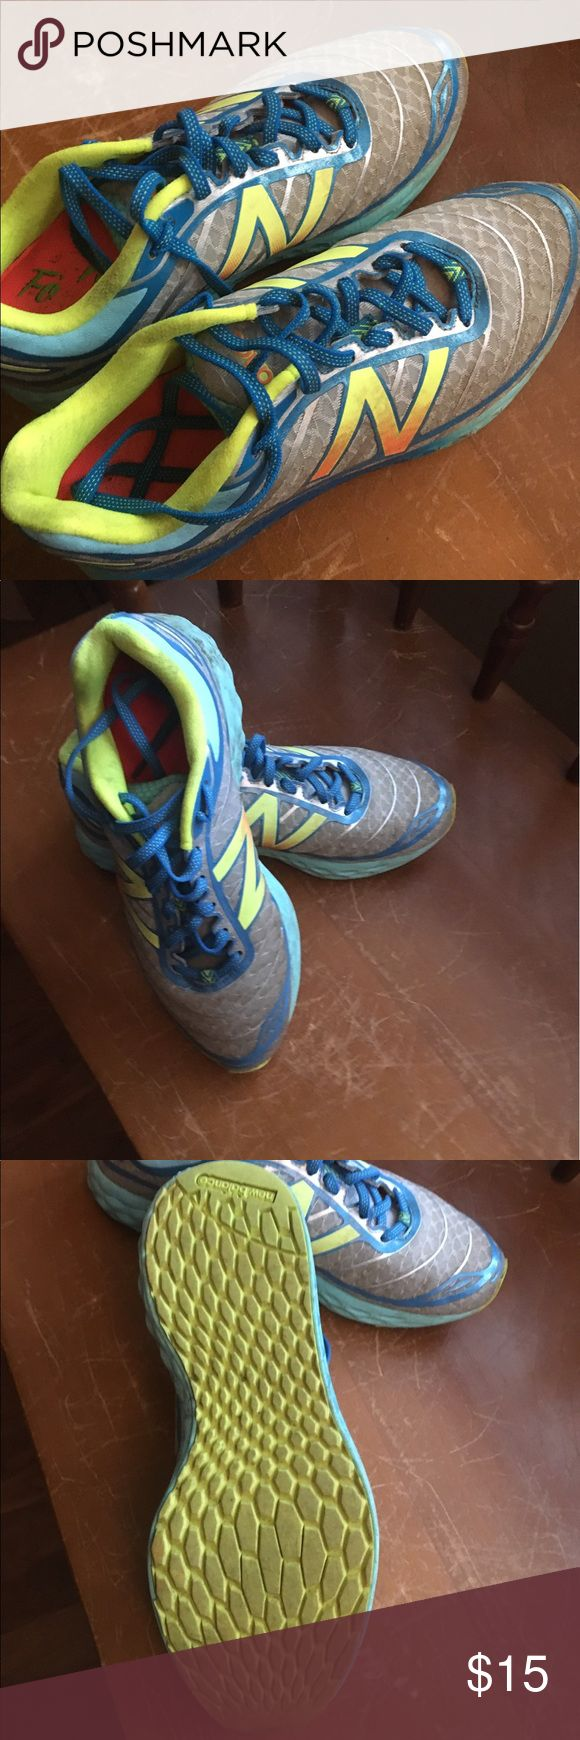 Women's New Balance Shoes Lightly worn new balance/walking running shoes.  Very good condition however they do have some dirt on them.  Colors are neon yellow, light blue, gray and orange.  I do not have the box. New Balance Shoes Sneakers